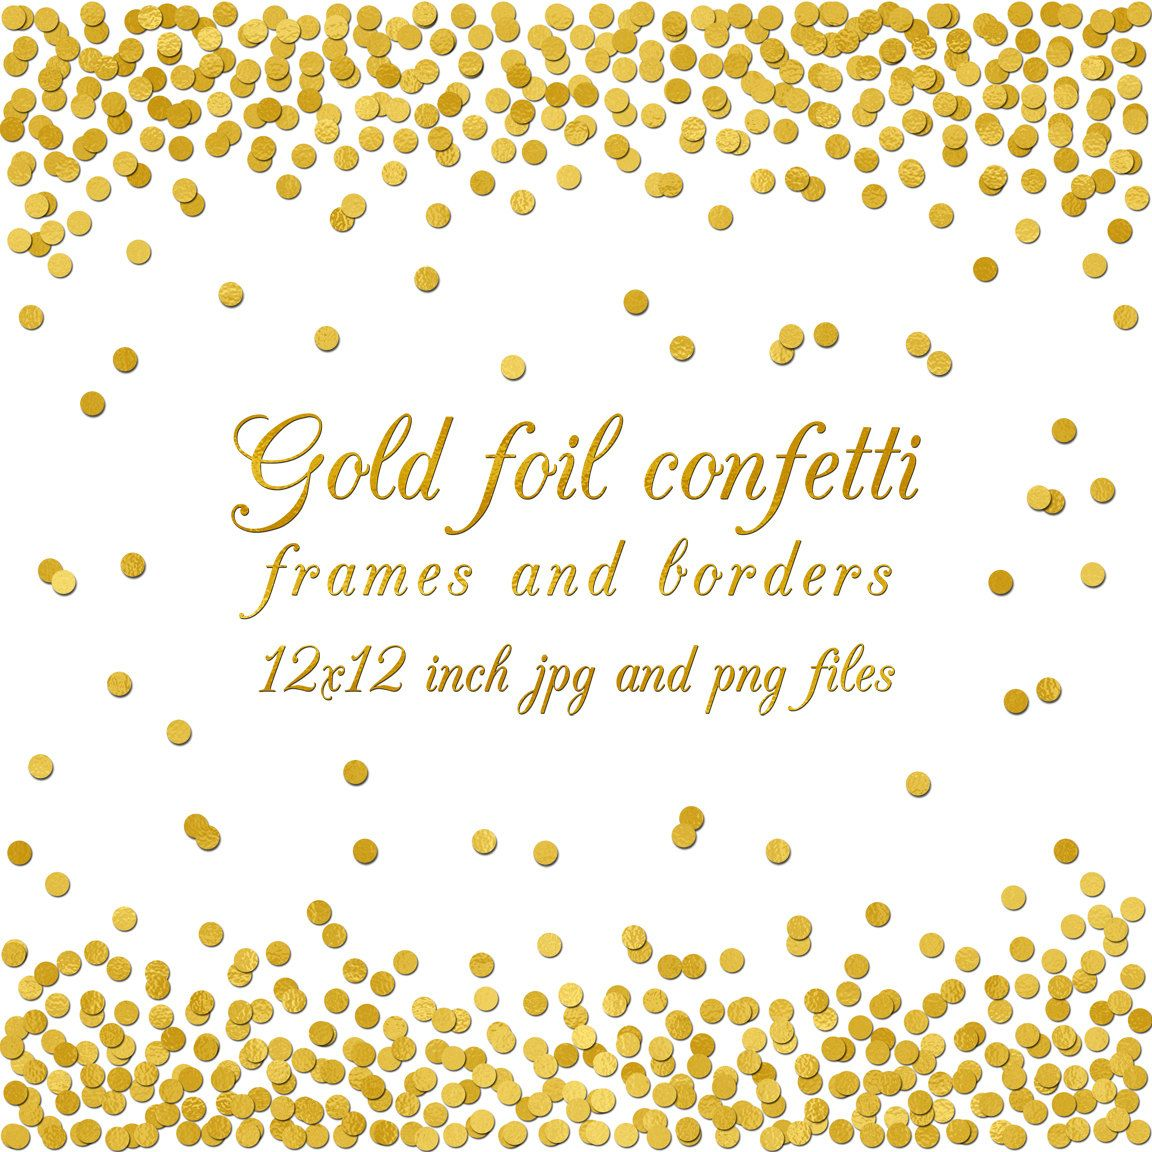 Gold Foil Confetti Overlay Border Frame Digital Paper 12x12 Inch Background Wedding Invitation Scrapbooking Png Jpg